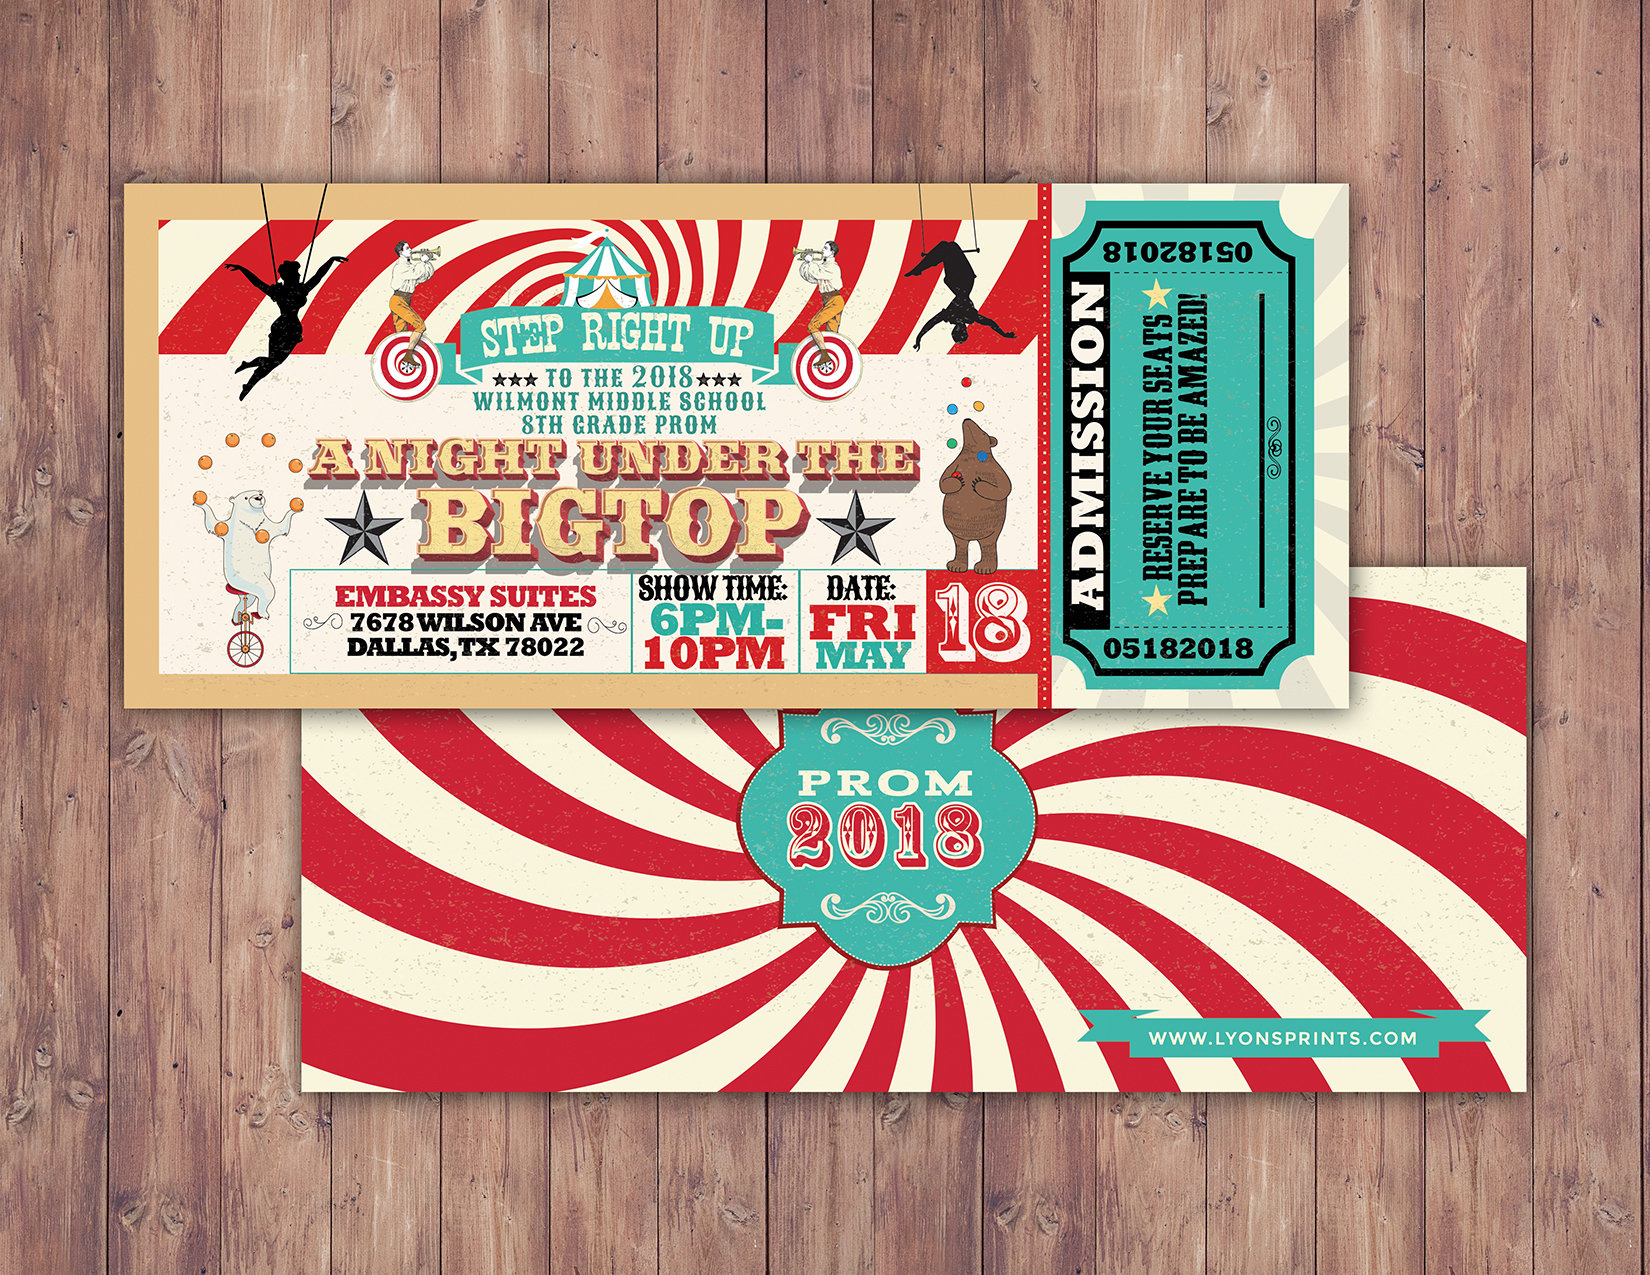 Circus party prom invitation carnival invitation prom invitation circus party prom invitation carnival invitation prom invitation graduation party invitation school dance invitation prom invitation filmwisefo